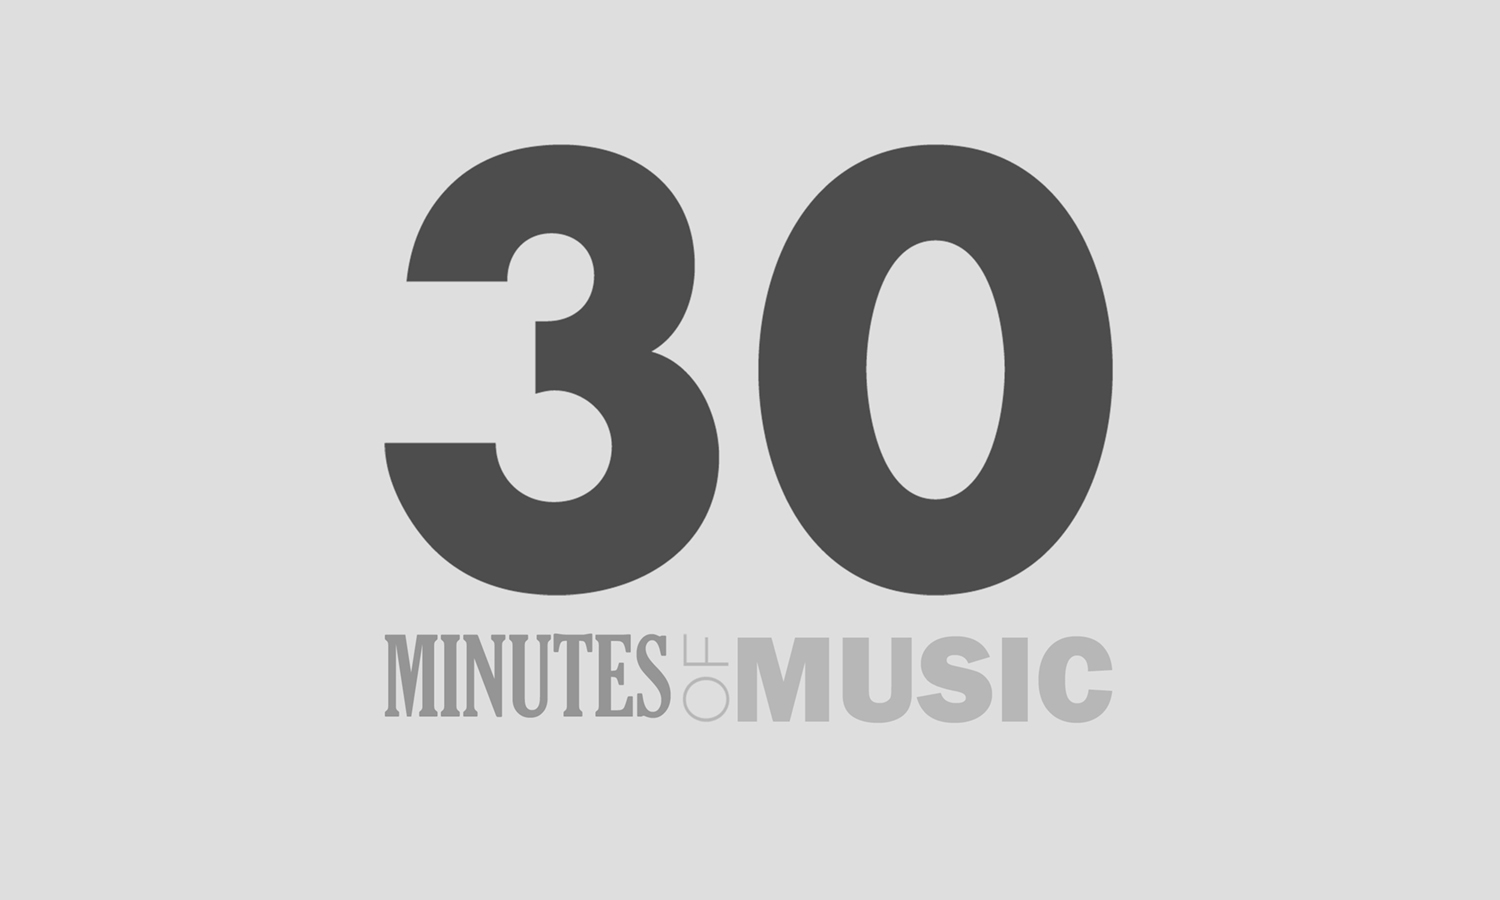 The logo for the 30 Minutes of Music podcast.